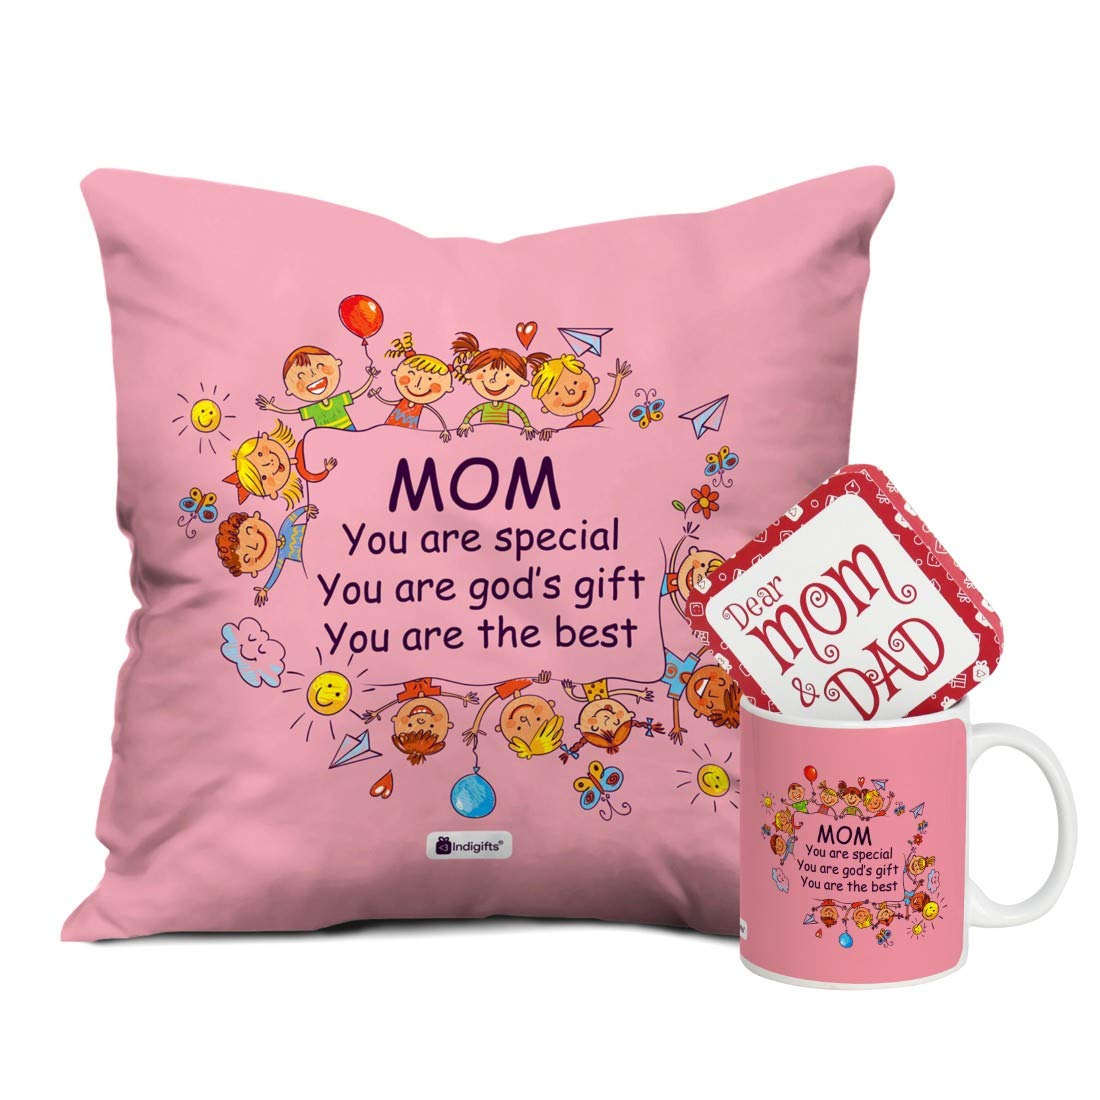 Indi ts for Mom Mothers Day Birthday Anniversary Mom Special God s Gift Light Pink Printed Small Cushion 12X12 with Filler Ceramic Mug Everyday Home